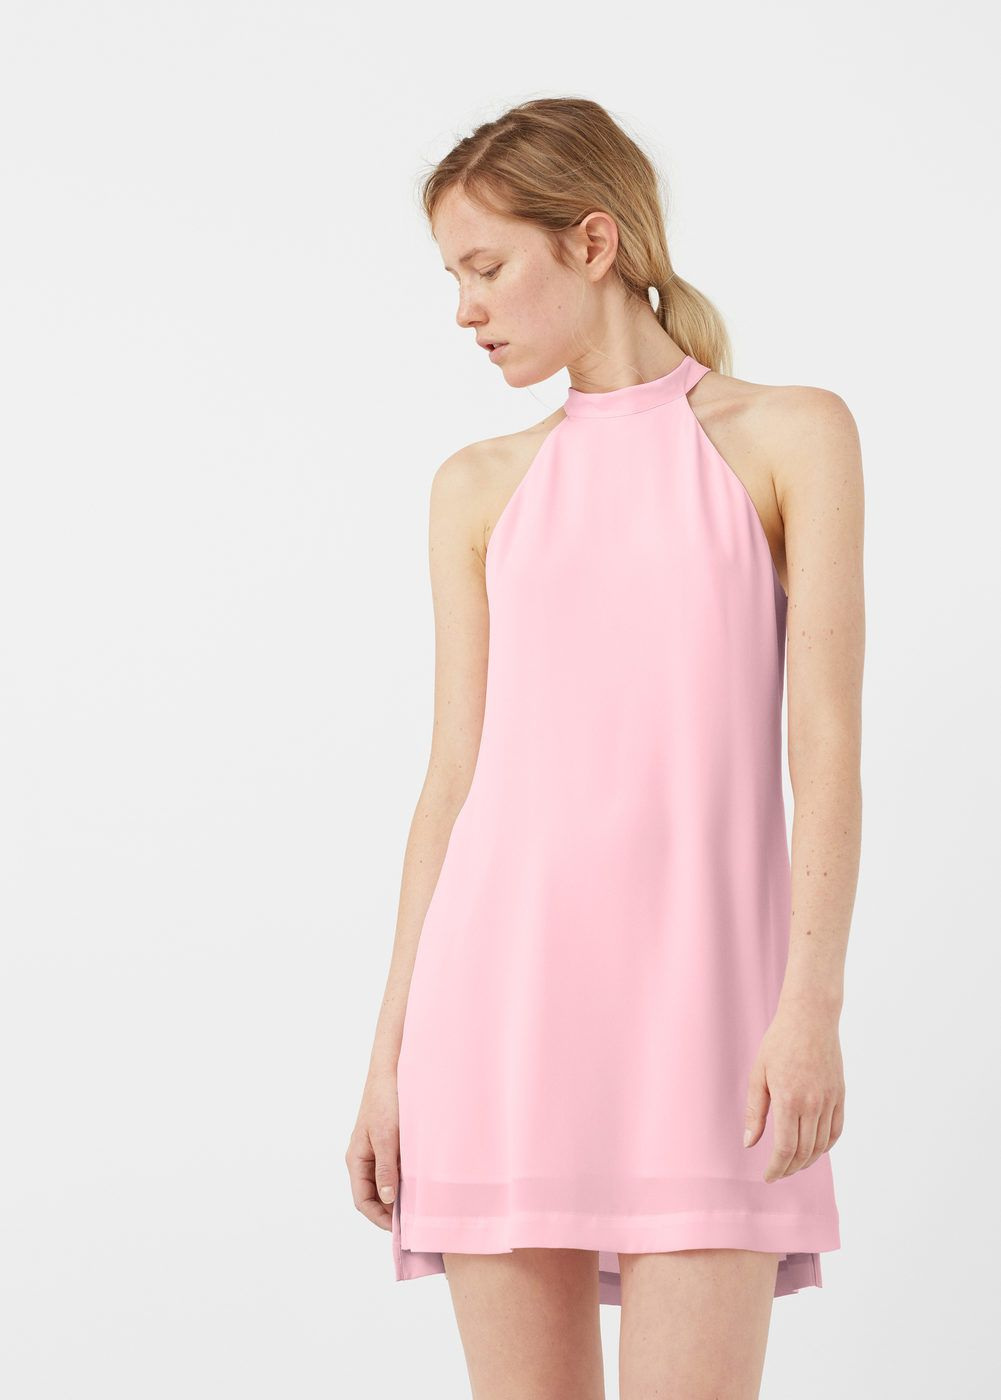 Halter neck dress - Women | Halter neck, Dresses dresses and Woman